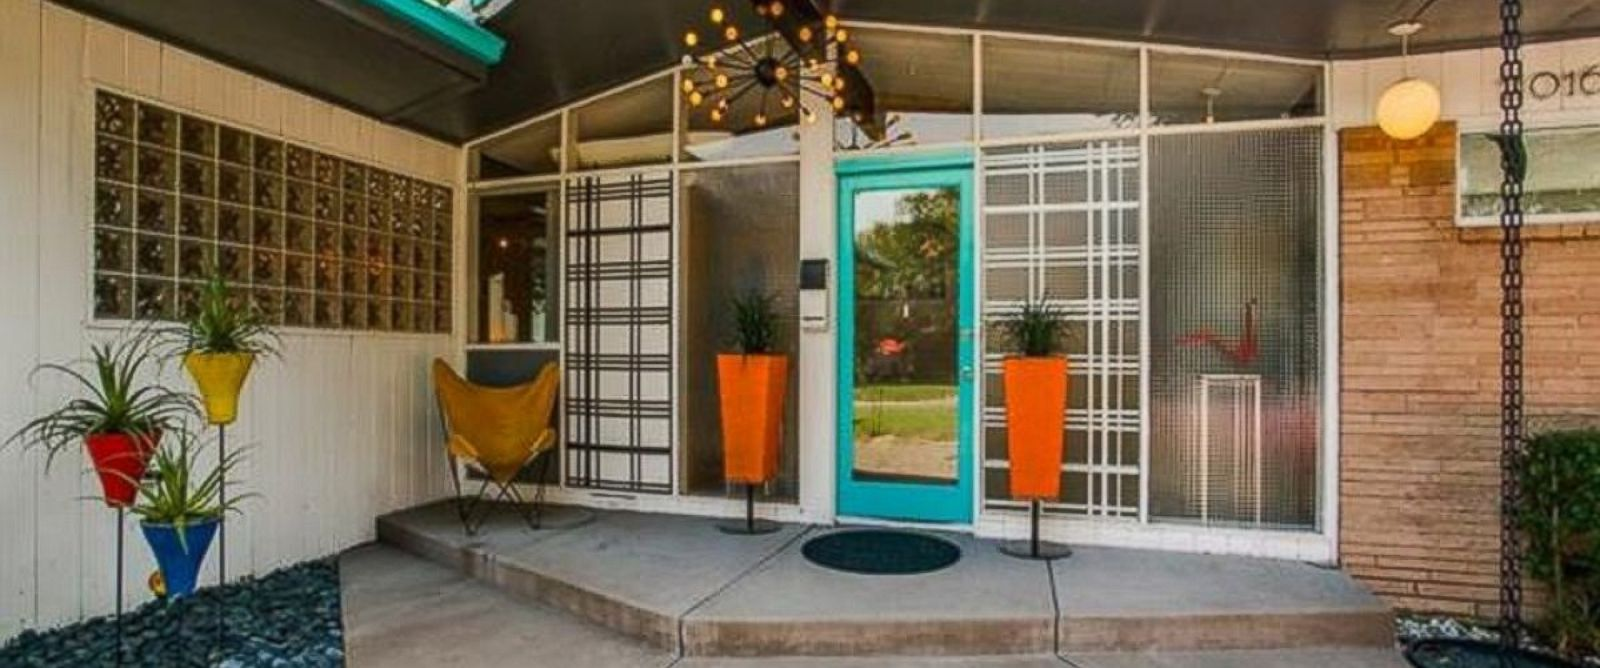 Peachy Keen 1950s Style Home Listed for 665K in Dallas